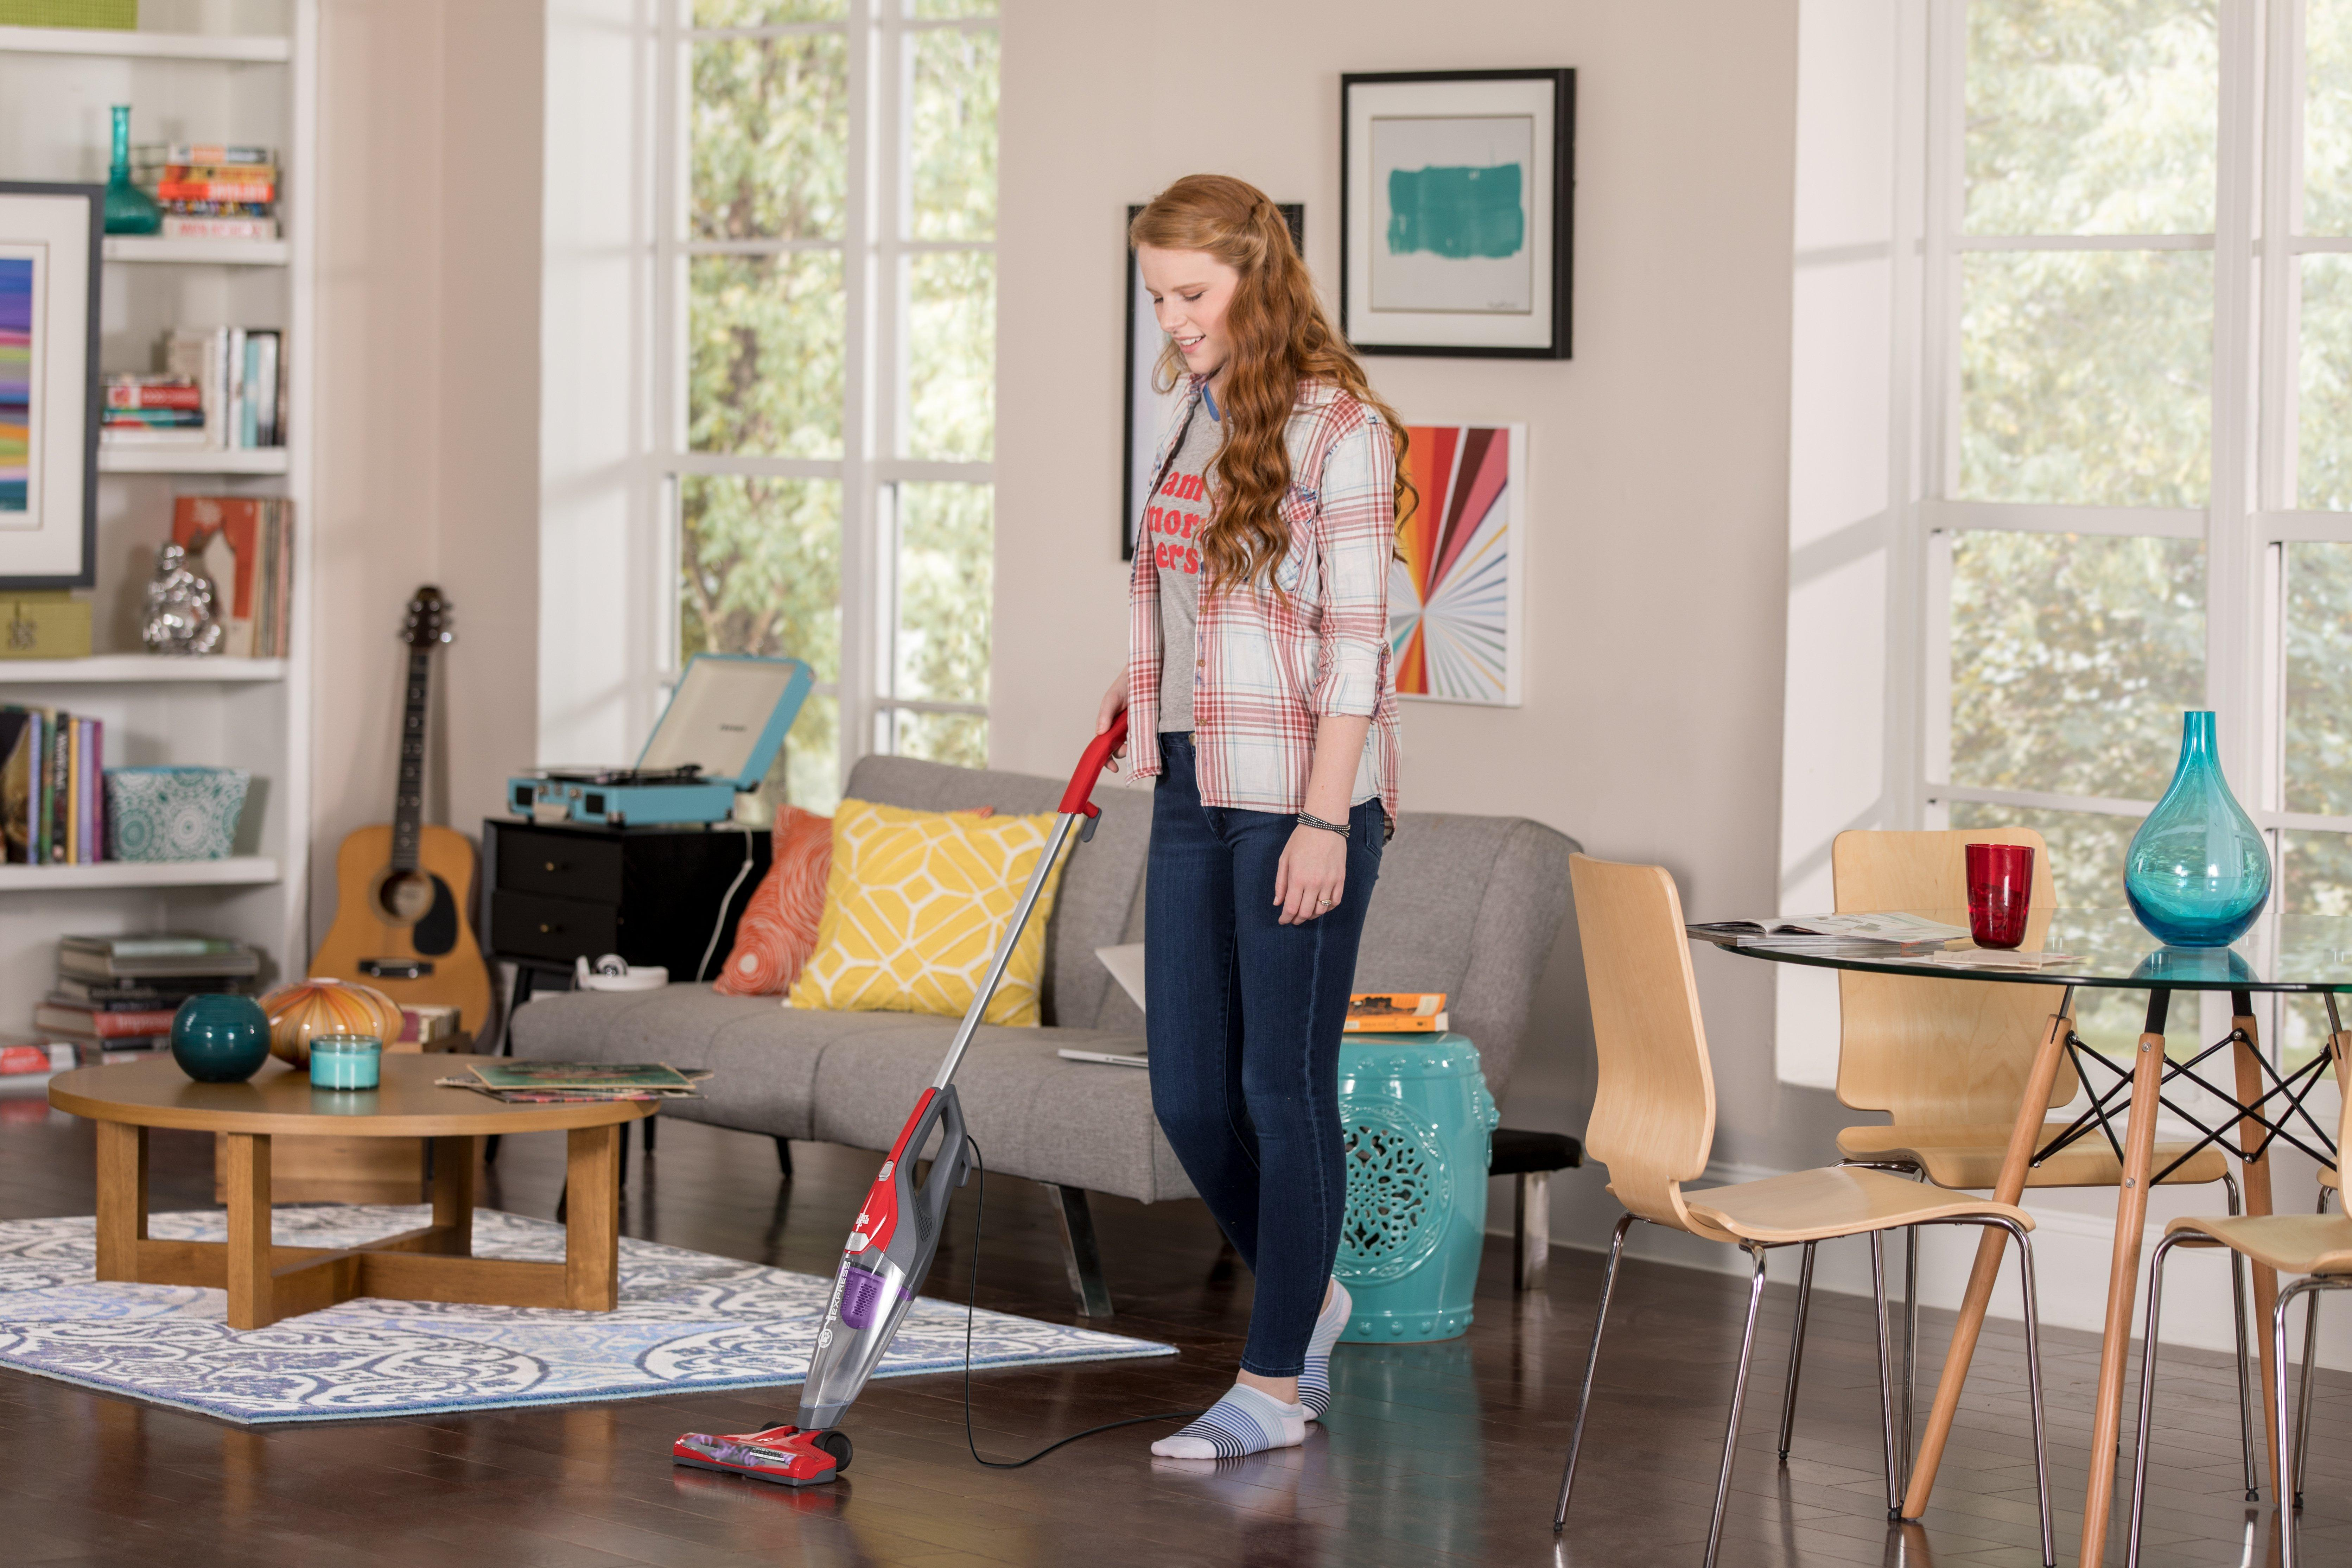 Power Express Lite Pet 3-in-1 Corded Stick Vacuum3